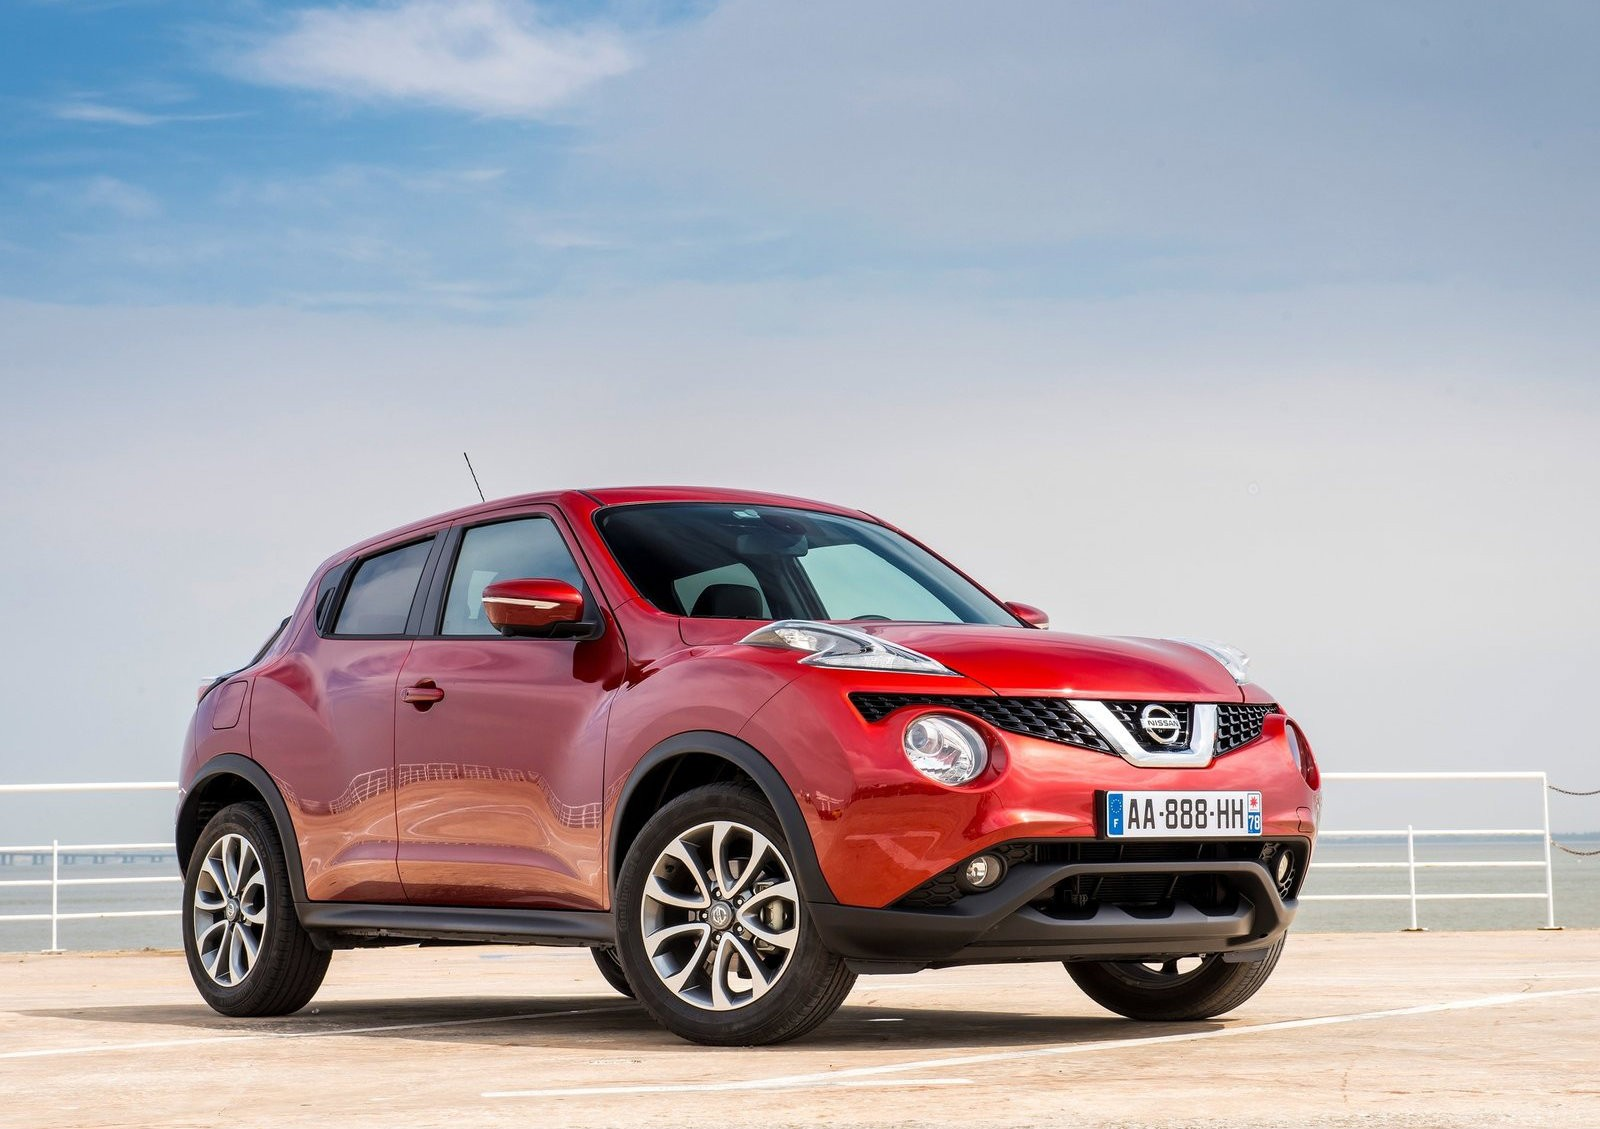 2017 nissan juke priced in the u s from 20 250. Black Bedroom Furniture Sets. Home Design Ideas